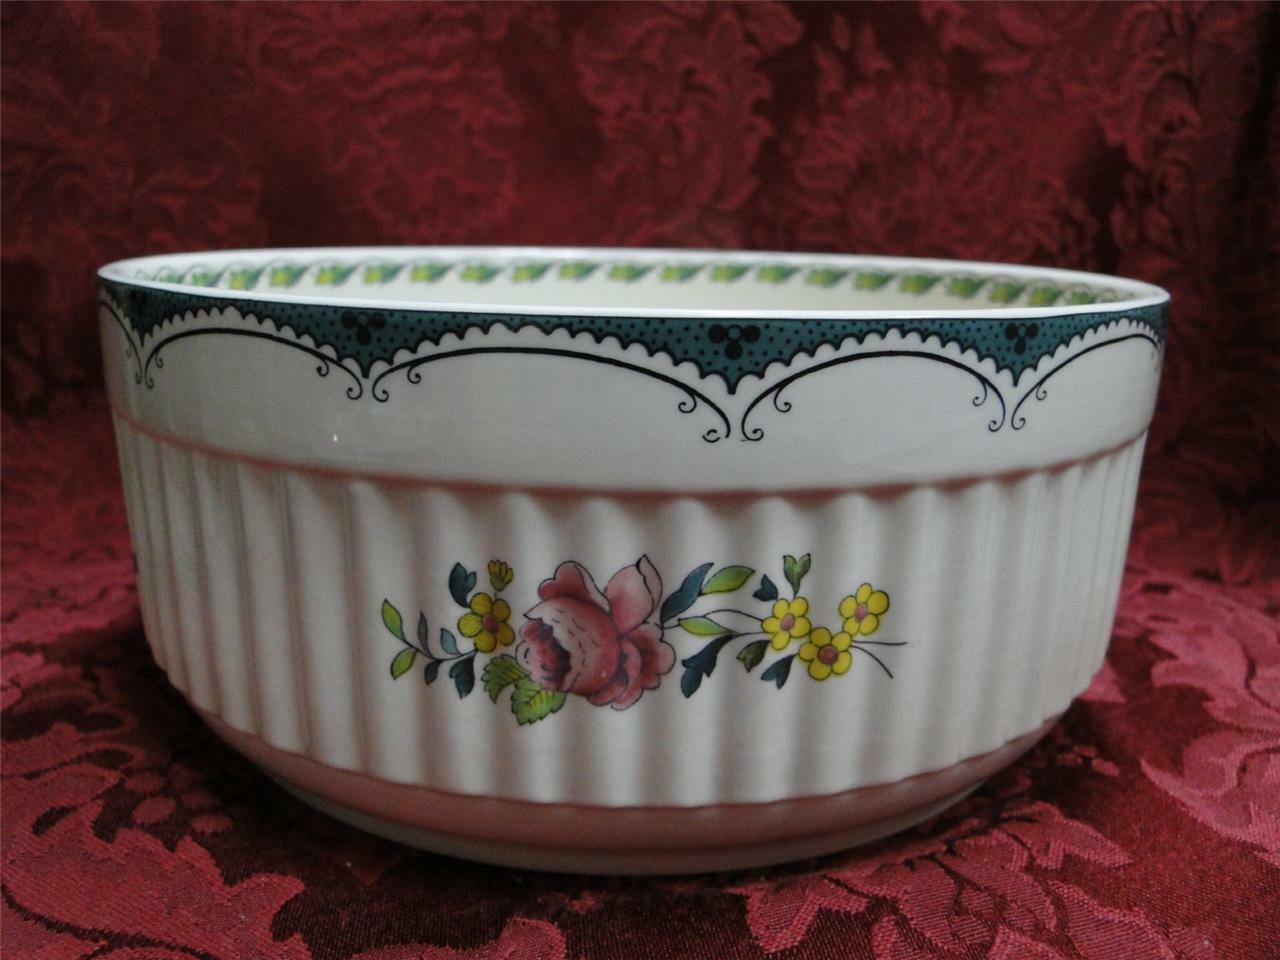 Spode Avondale Teal, Basket of Flowers  Souffle Dish, 7.25  x 3